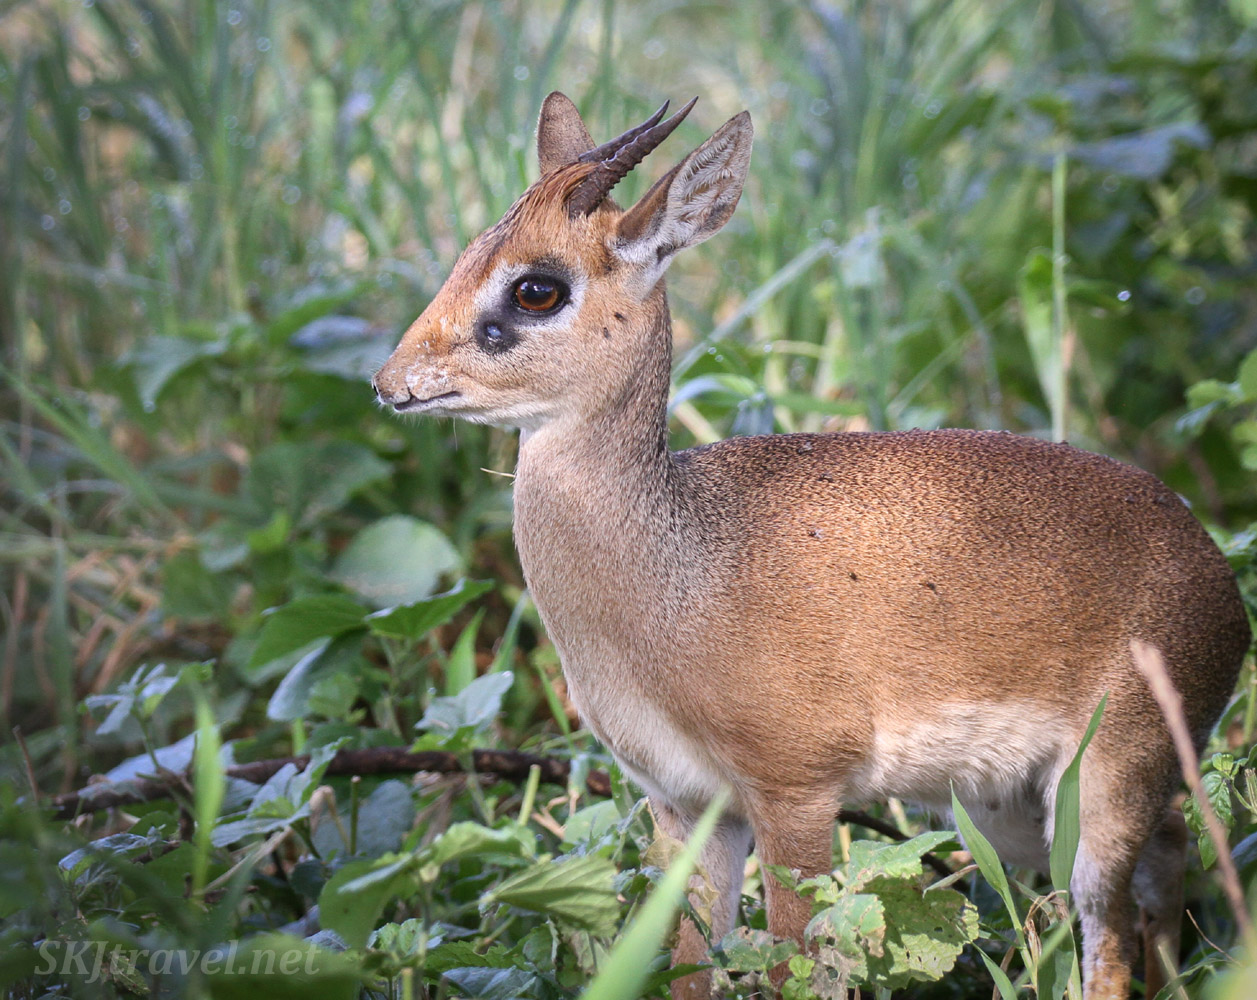 Dik-dik in the bushes, scent gland near its eyes, Tarangire national park, Tanzania.